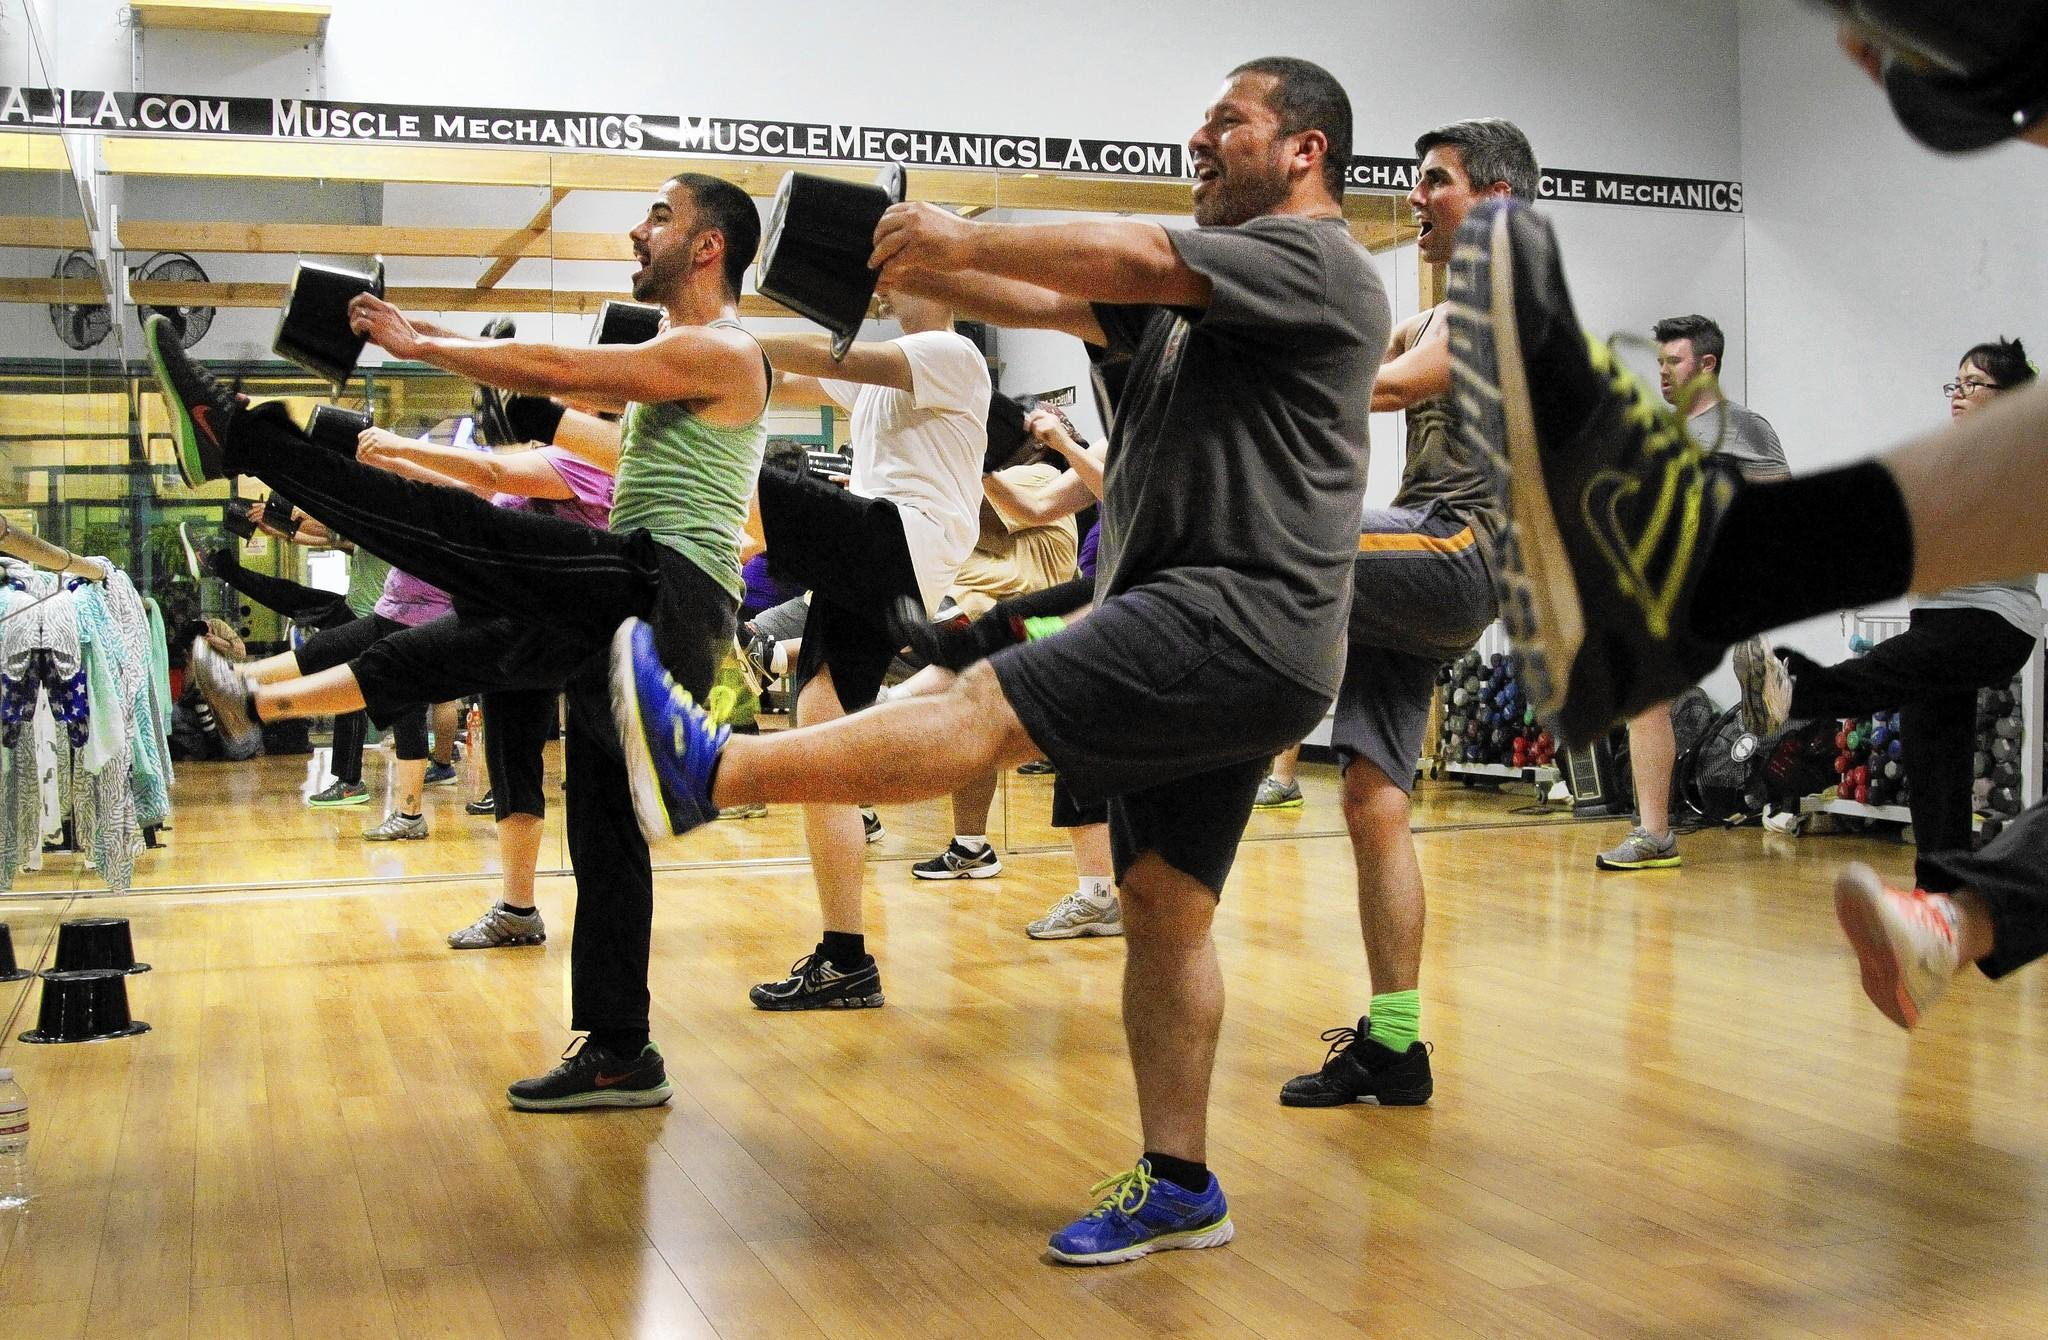 Joseph Corella, in green, leads a Broadway Bodies L.A. class — one of many different types of exercise instruction that incorporate yoga, music, interval training and more.